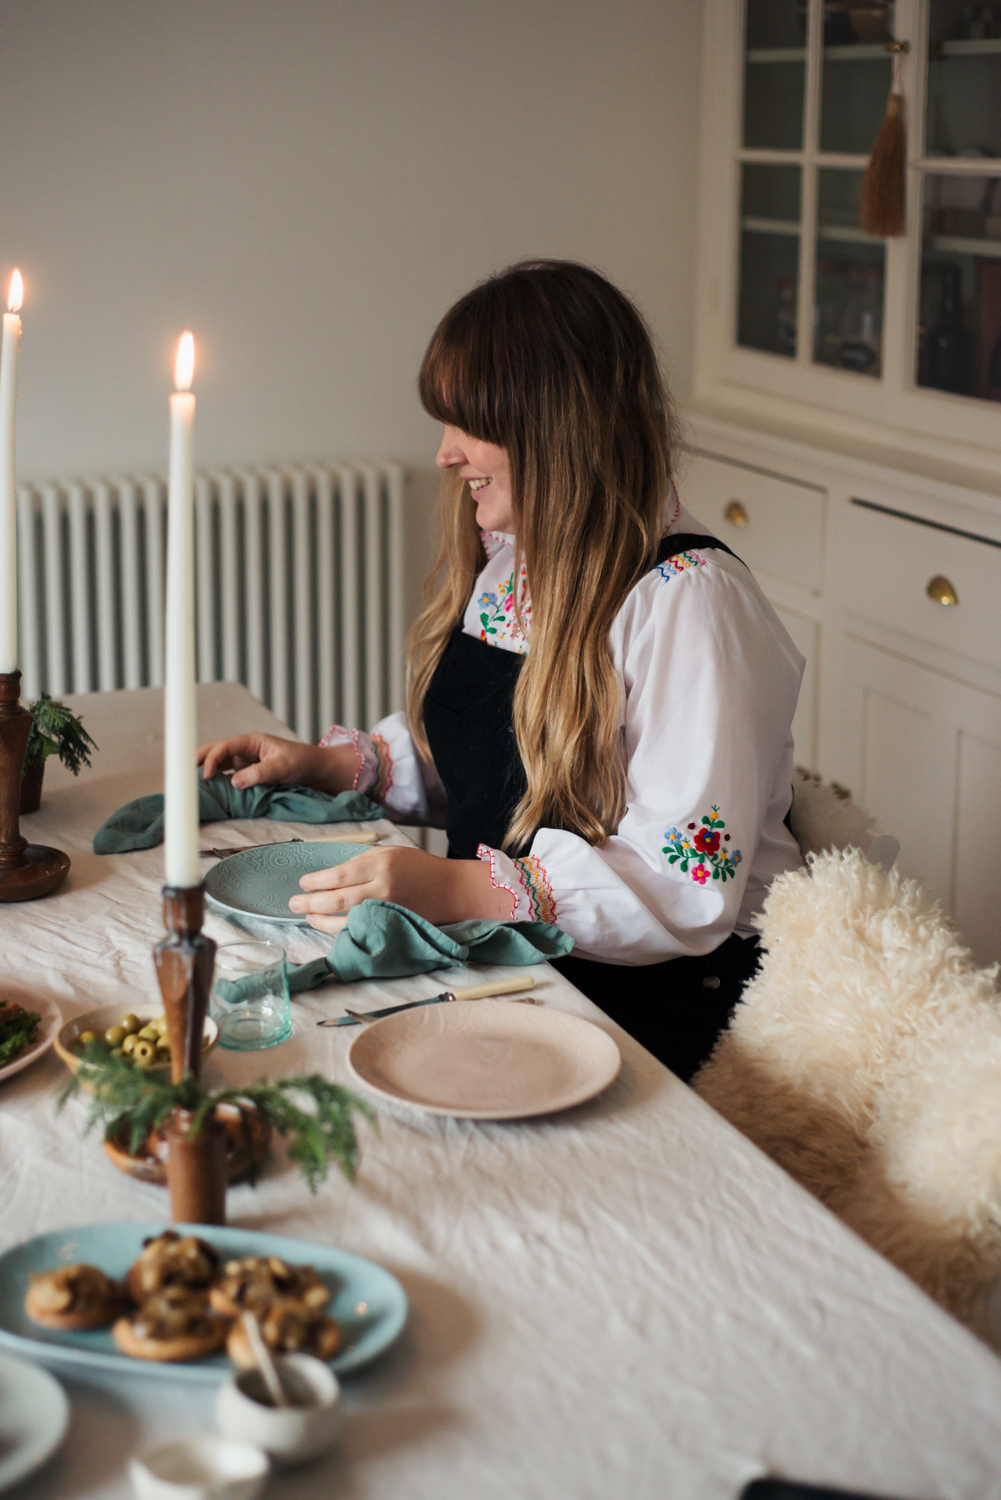 Food with friends: a winter tonic. With Denby   Hannah Bullivant